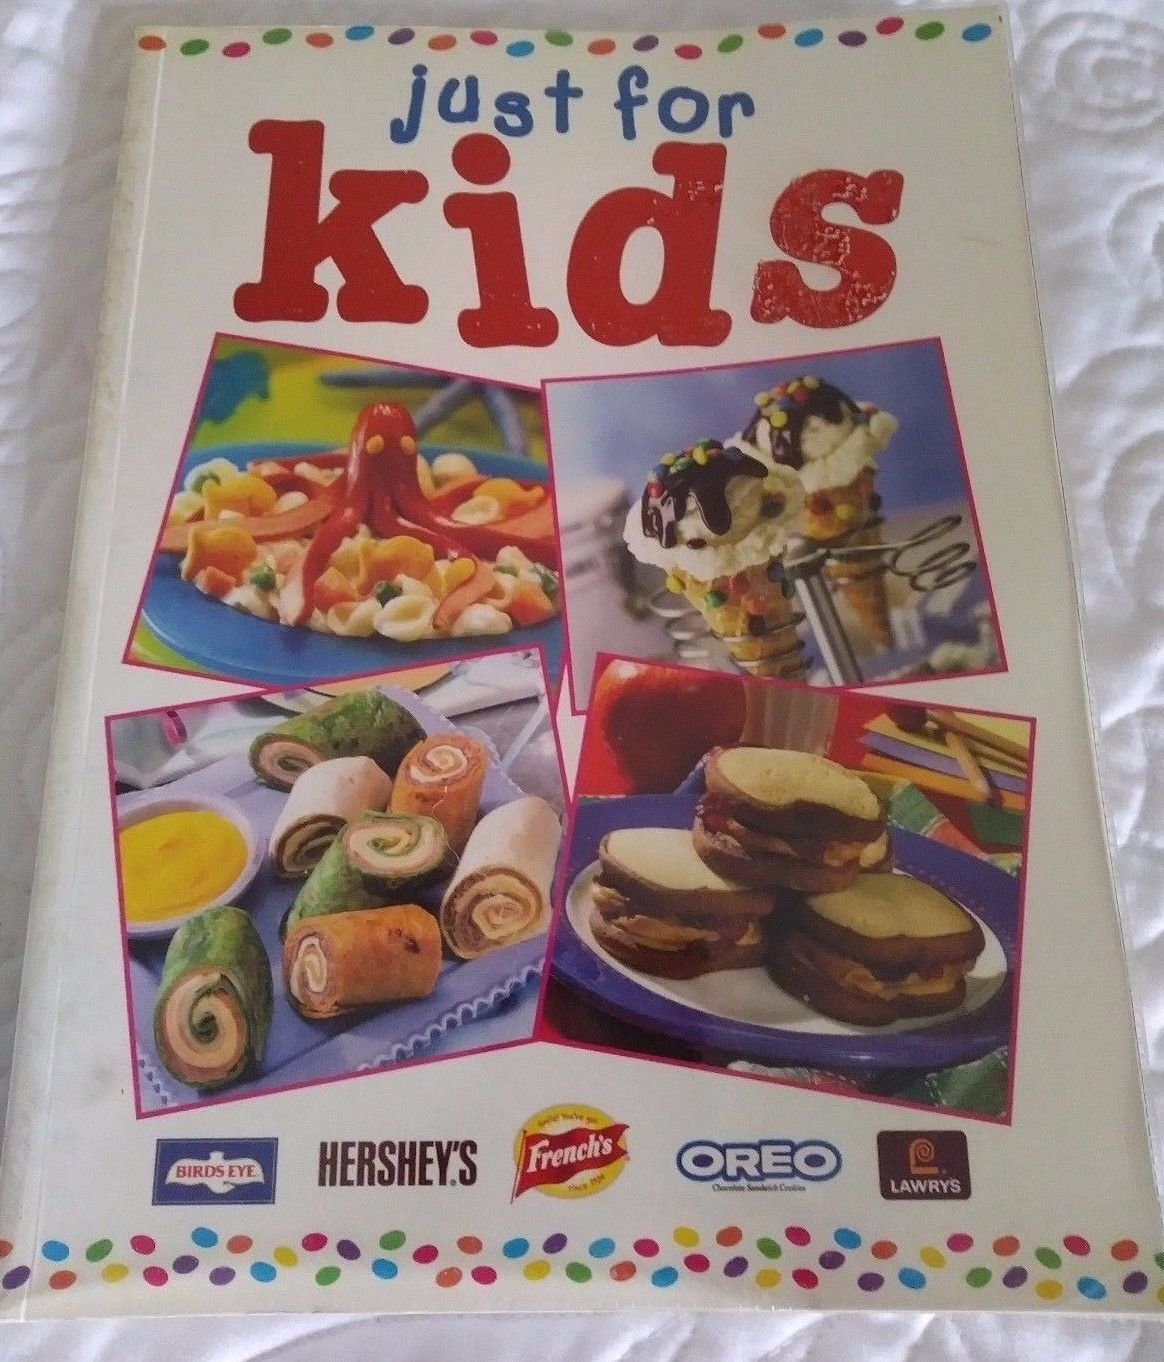 Kid friendly cook book just for kids recipes hershey oreo frenchs kid friendly cook book just for kids recipes hershey oreo frenchs birds eye euc forumfinder Choice Image